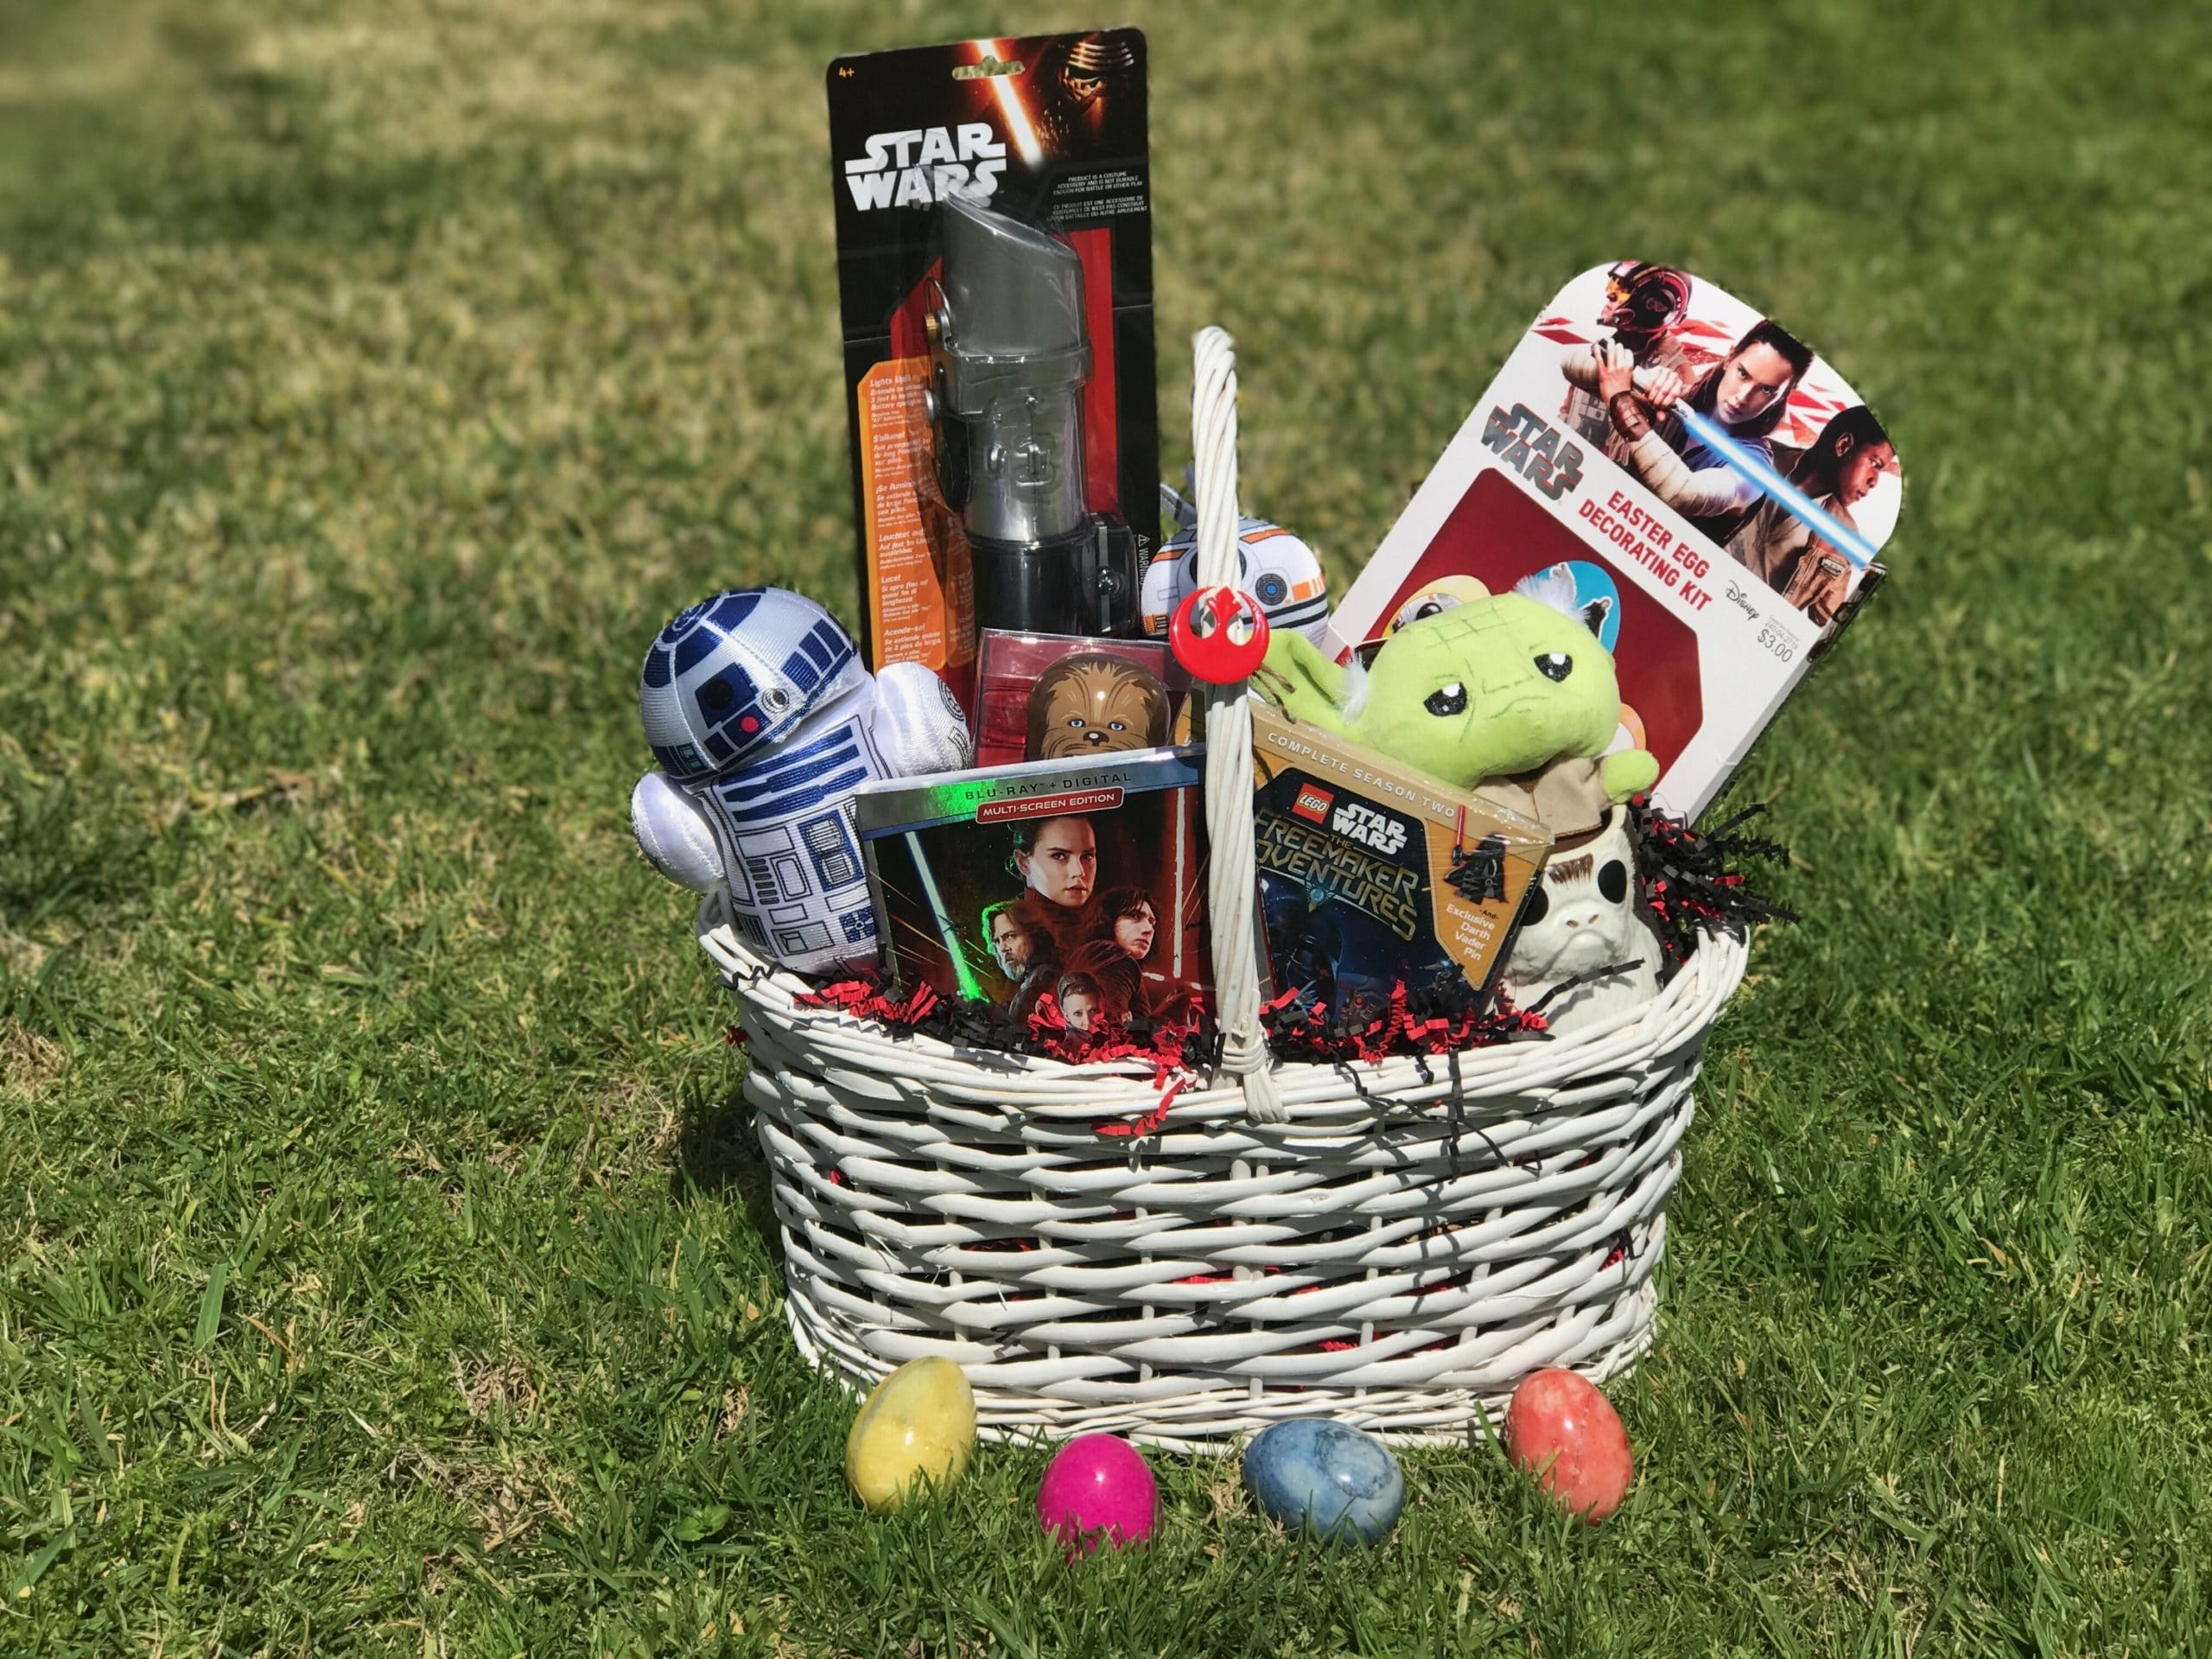 Enter to win a Star Wars Easter basket!